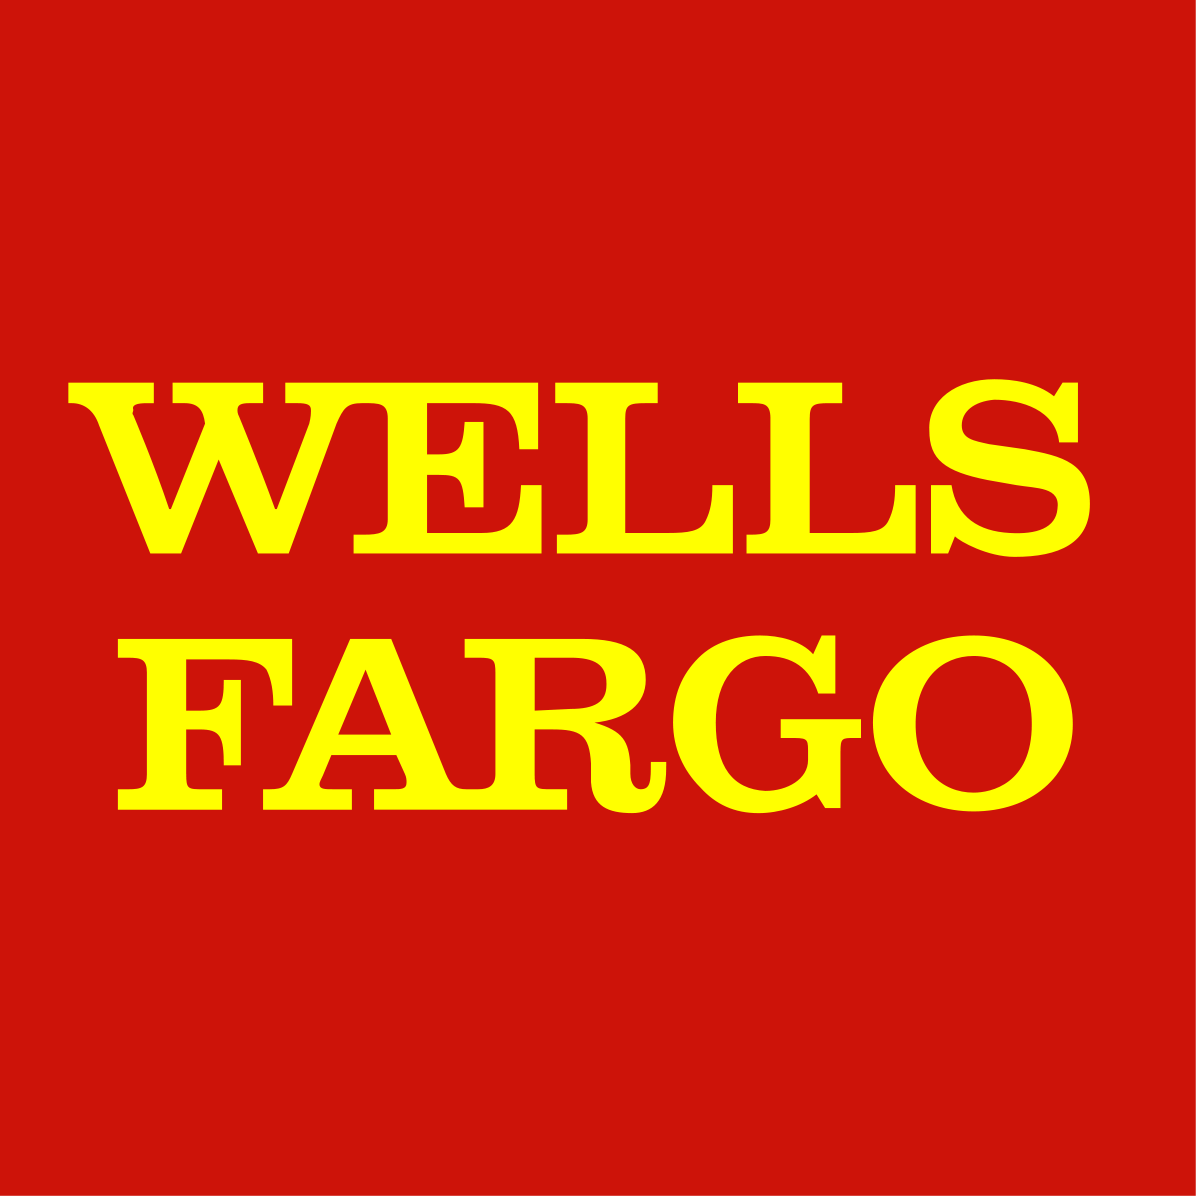 www.wellsfargo.com Online Banking How to Login | Sign Up